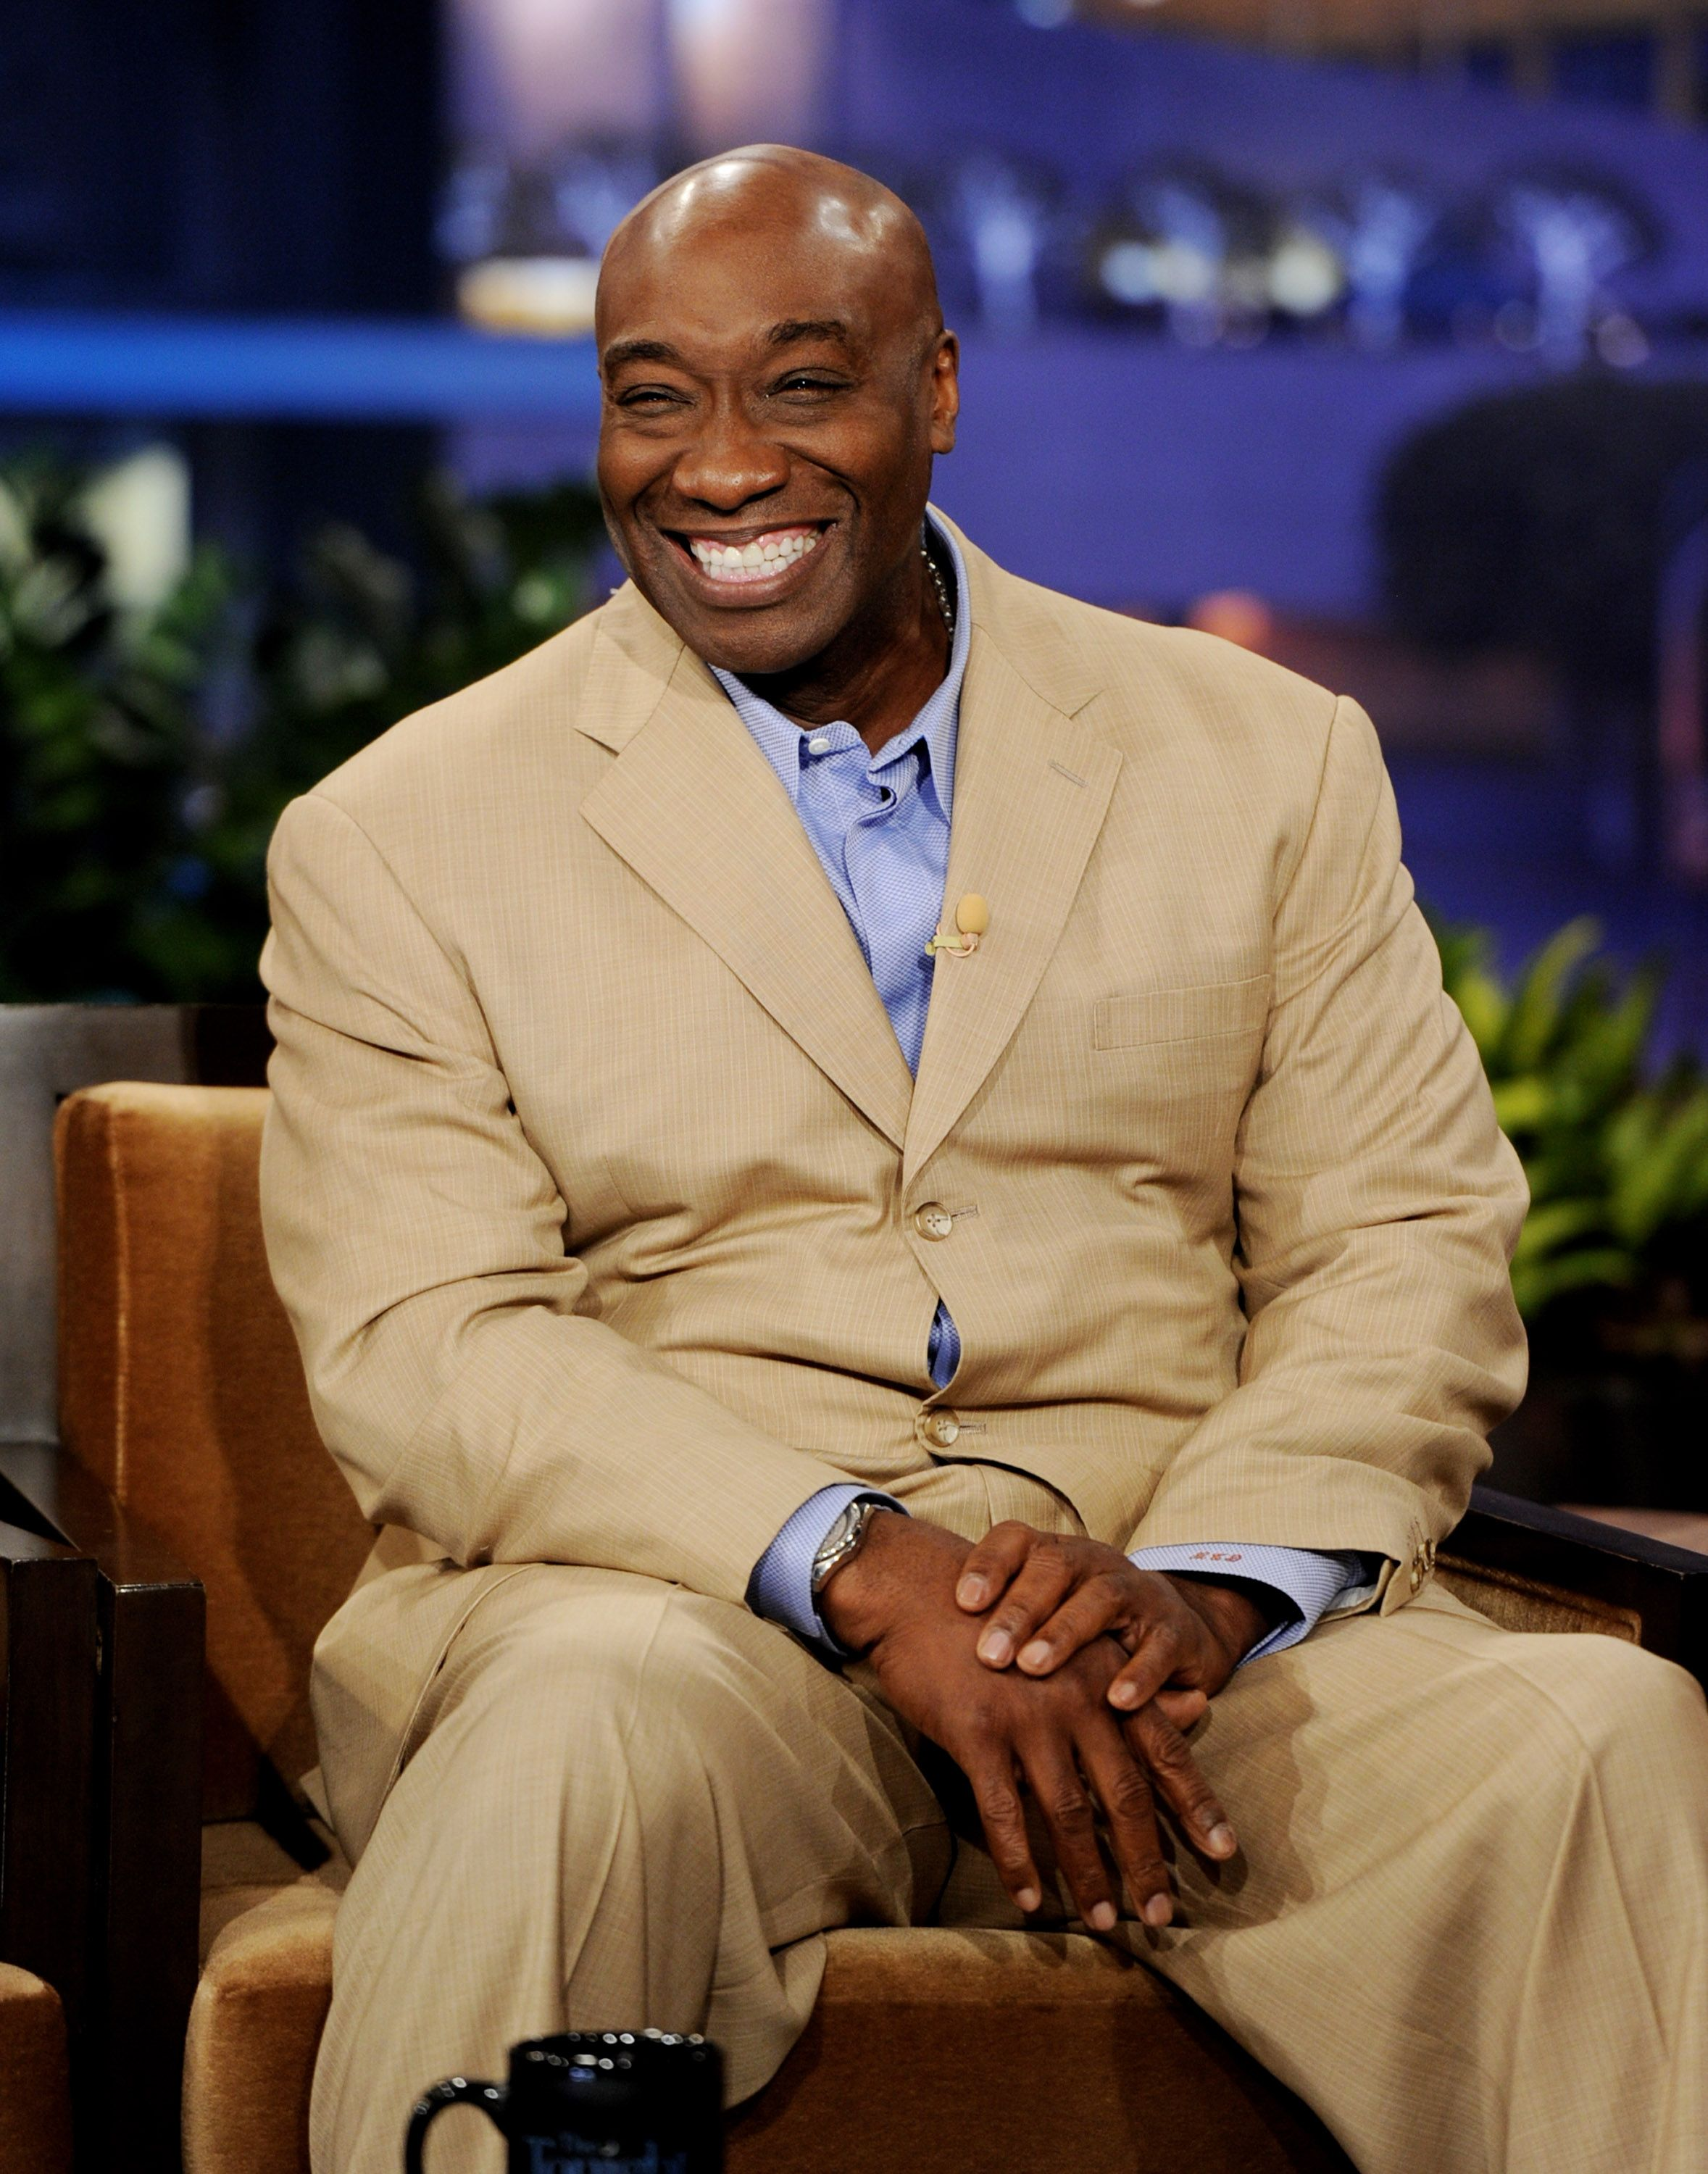 """Michael Clarke Duncan appears on """"The Tonight Show With Jay Leno"""" at NBC Studios on February 20, 2012 